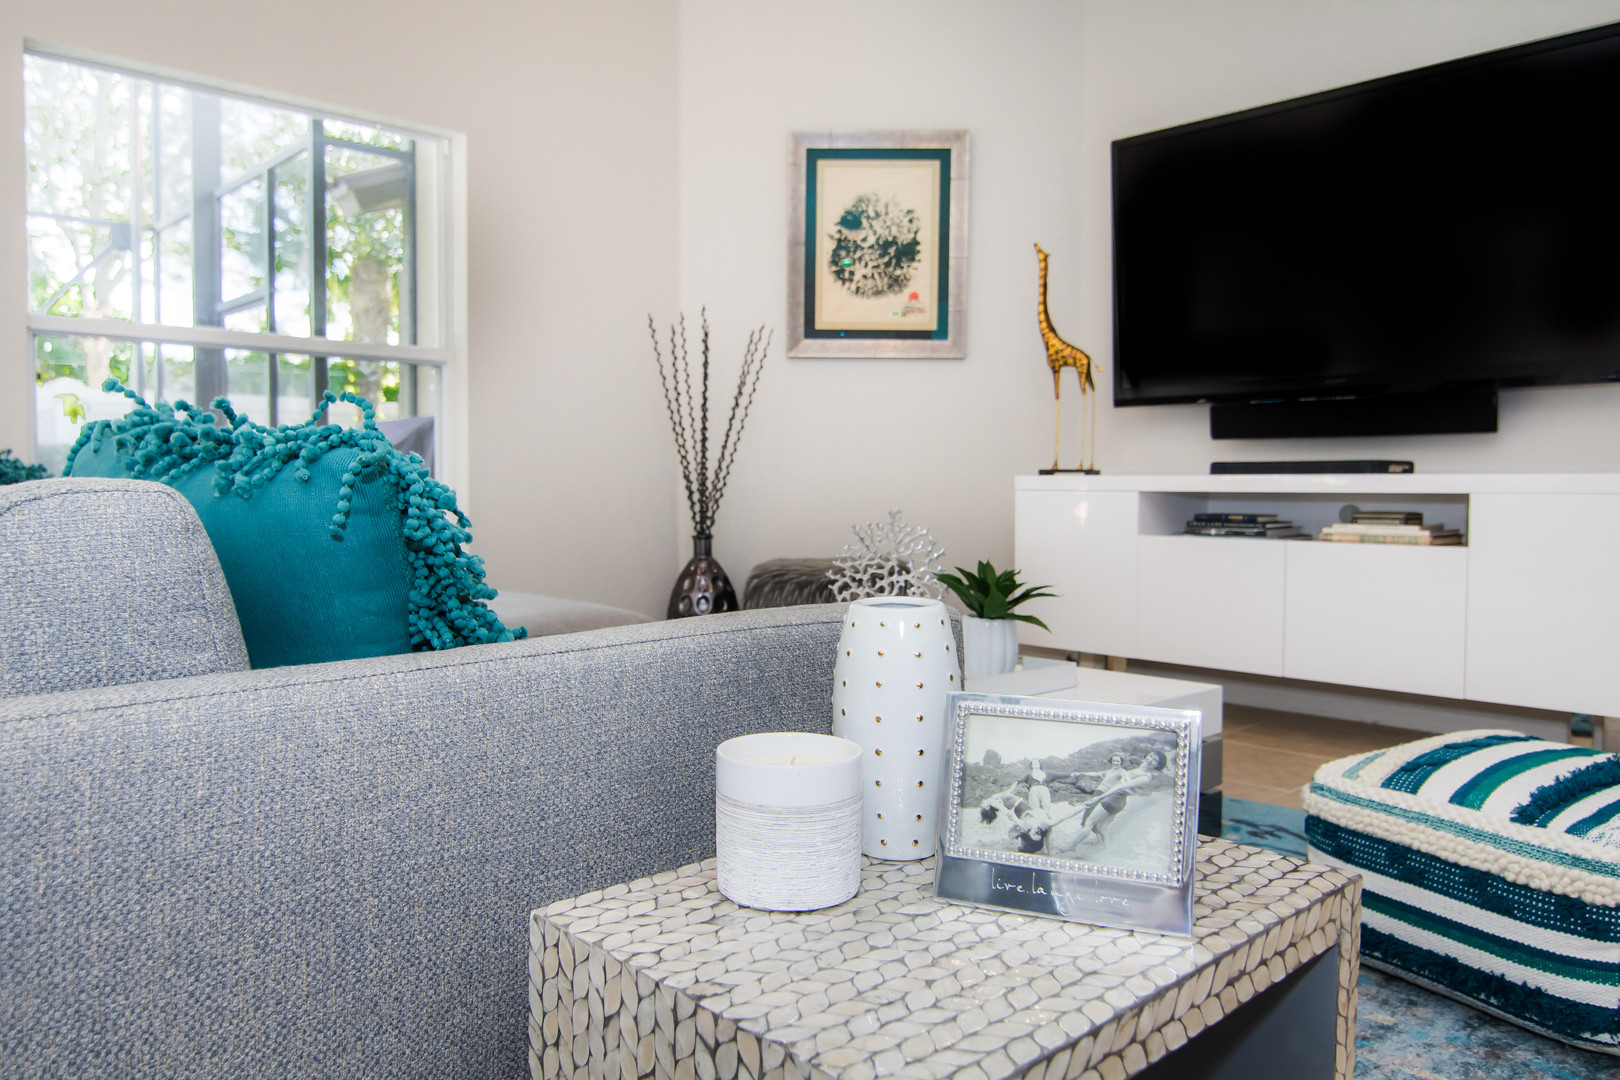 Styling and decor, end table